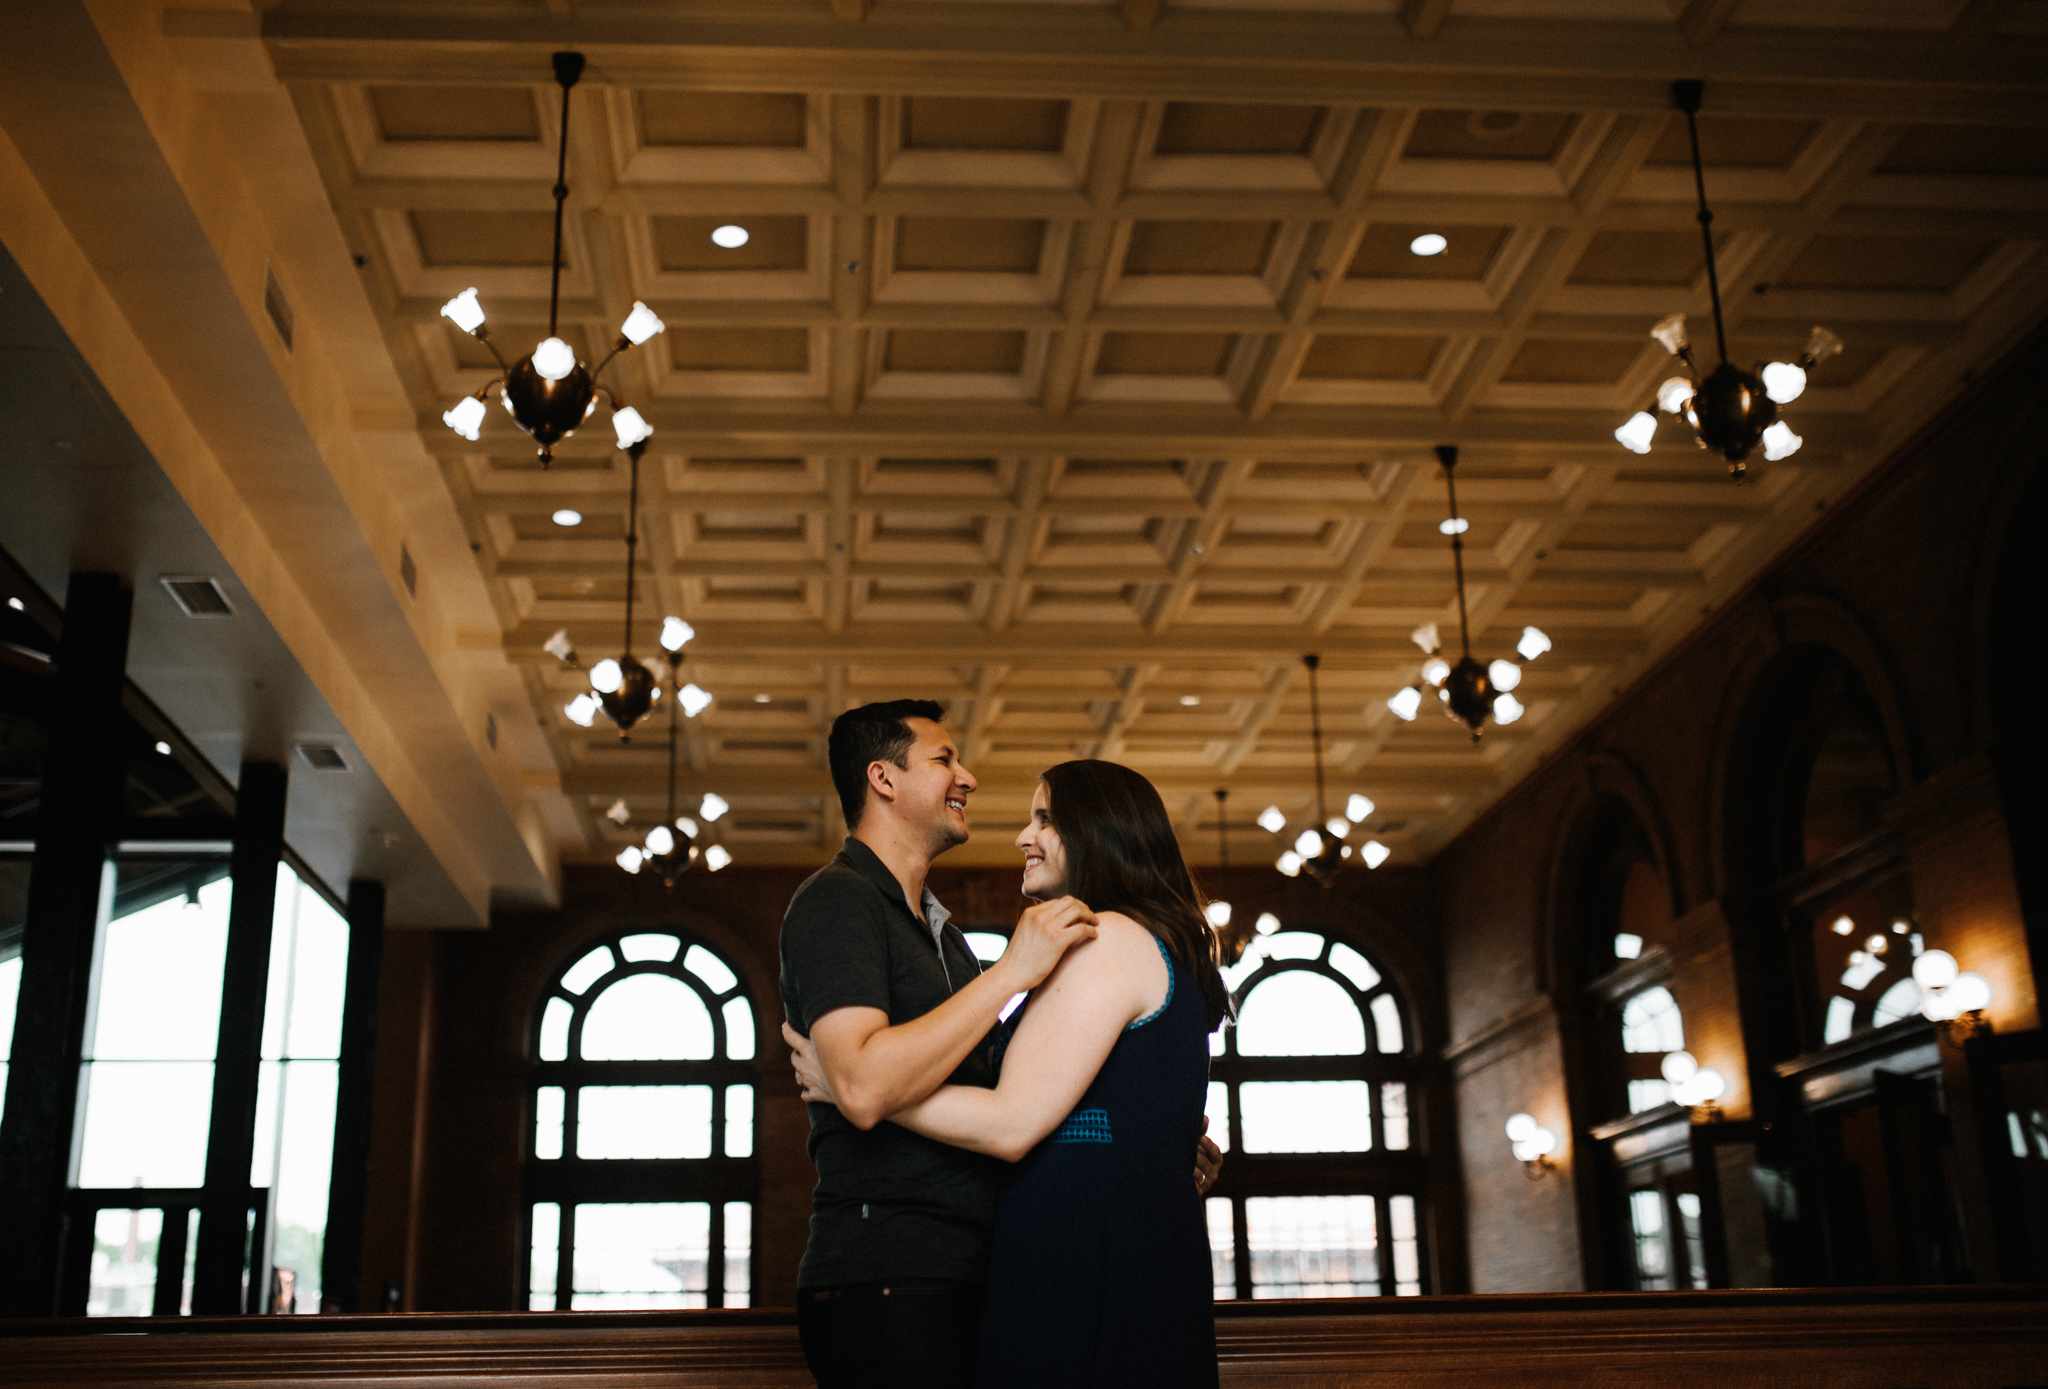 rachel_alex_richmond_engagement_session_mainstreetstation_rebeccaburtphotography-15.jpg